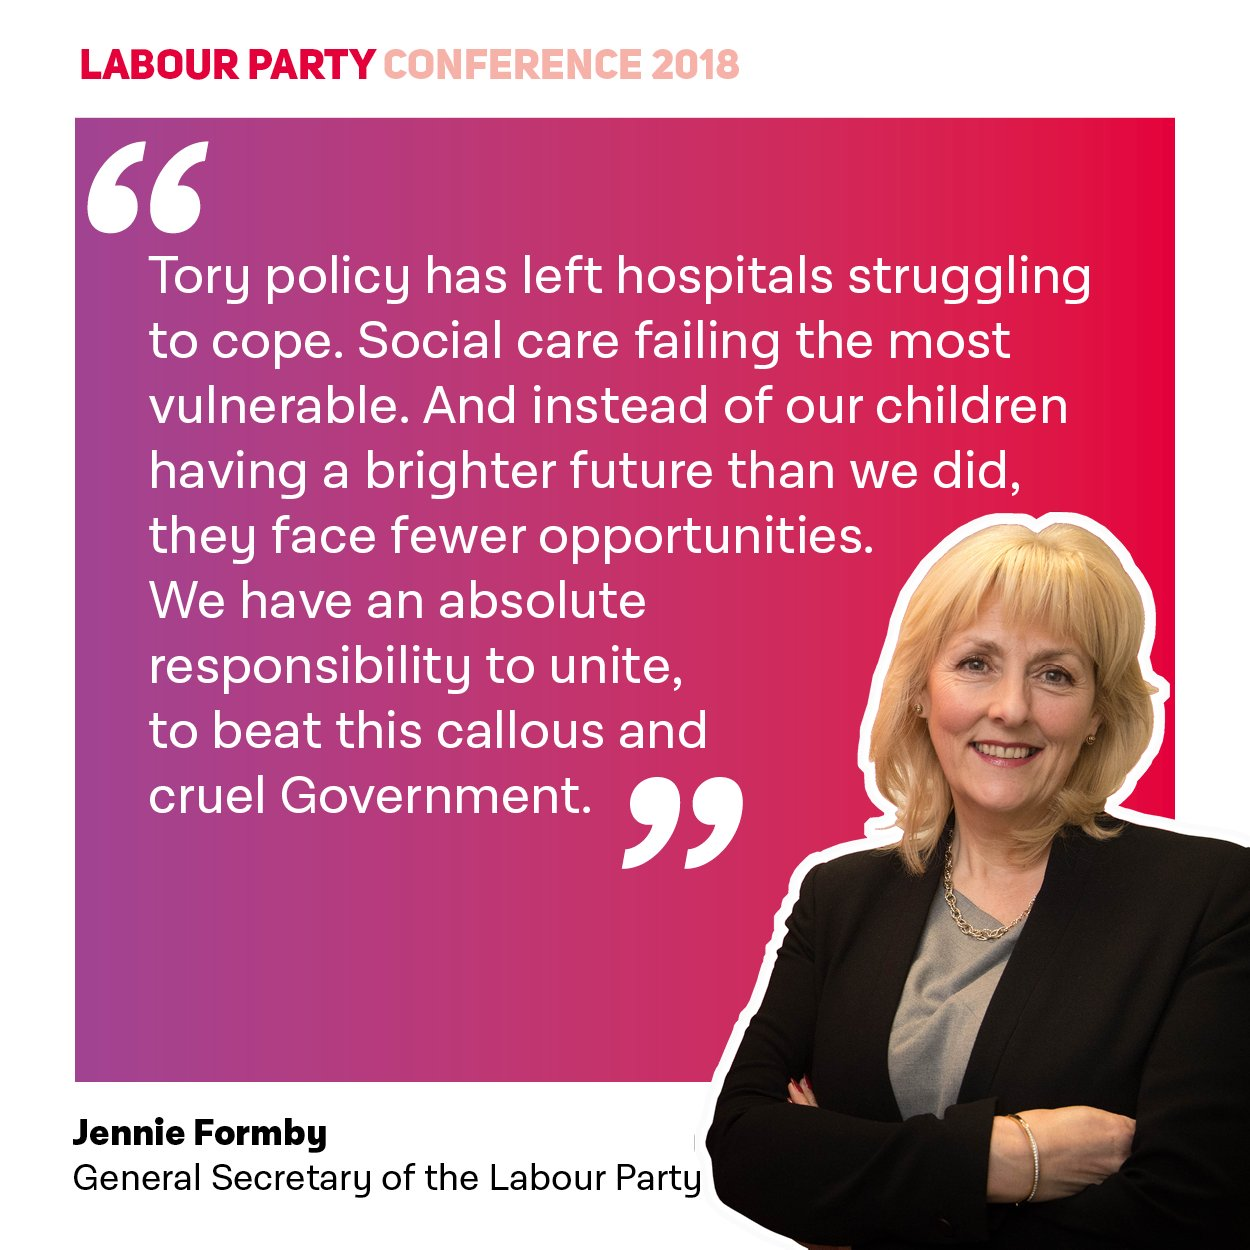 �� We have an absolute responsibility to unite – to beat this callous and cruel Government. @JennieGenSec #Lab18 https://t.co/HPQ7zBRqeb